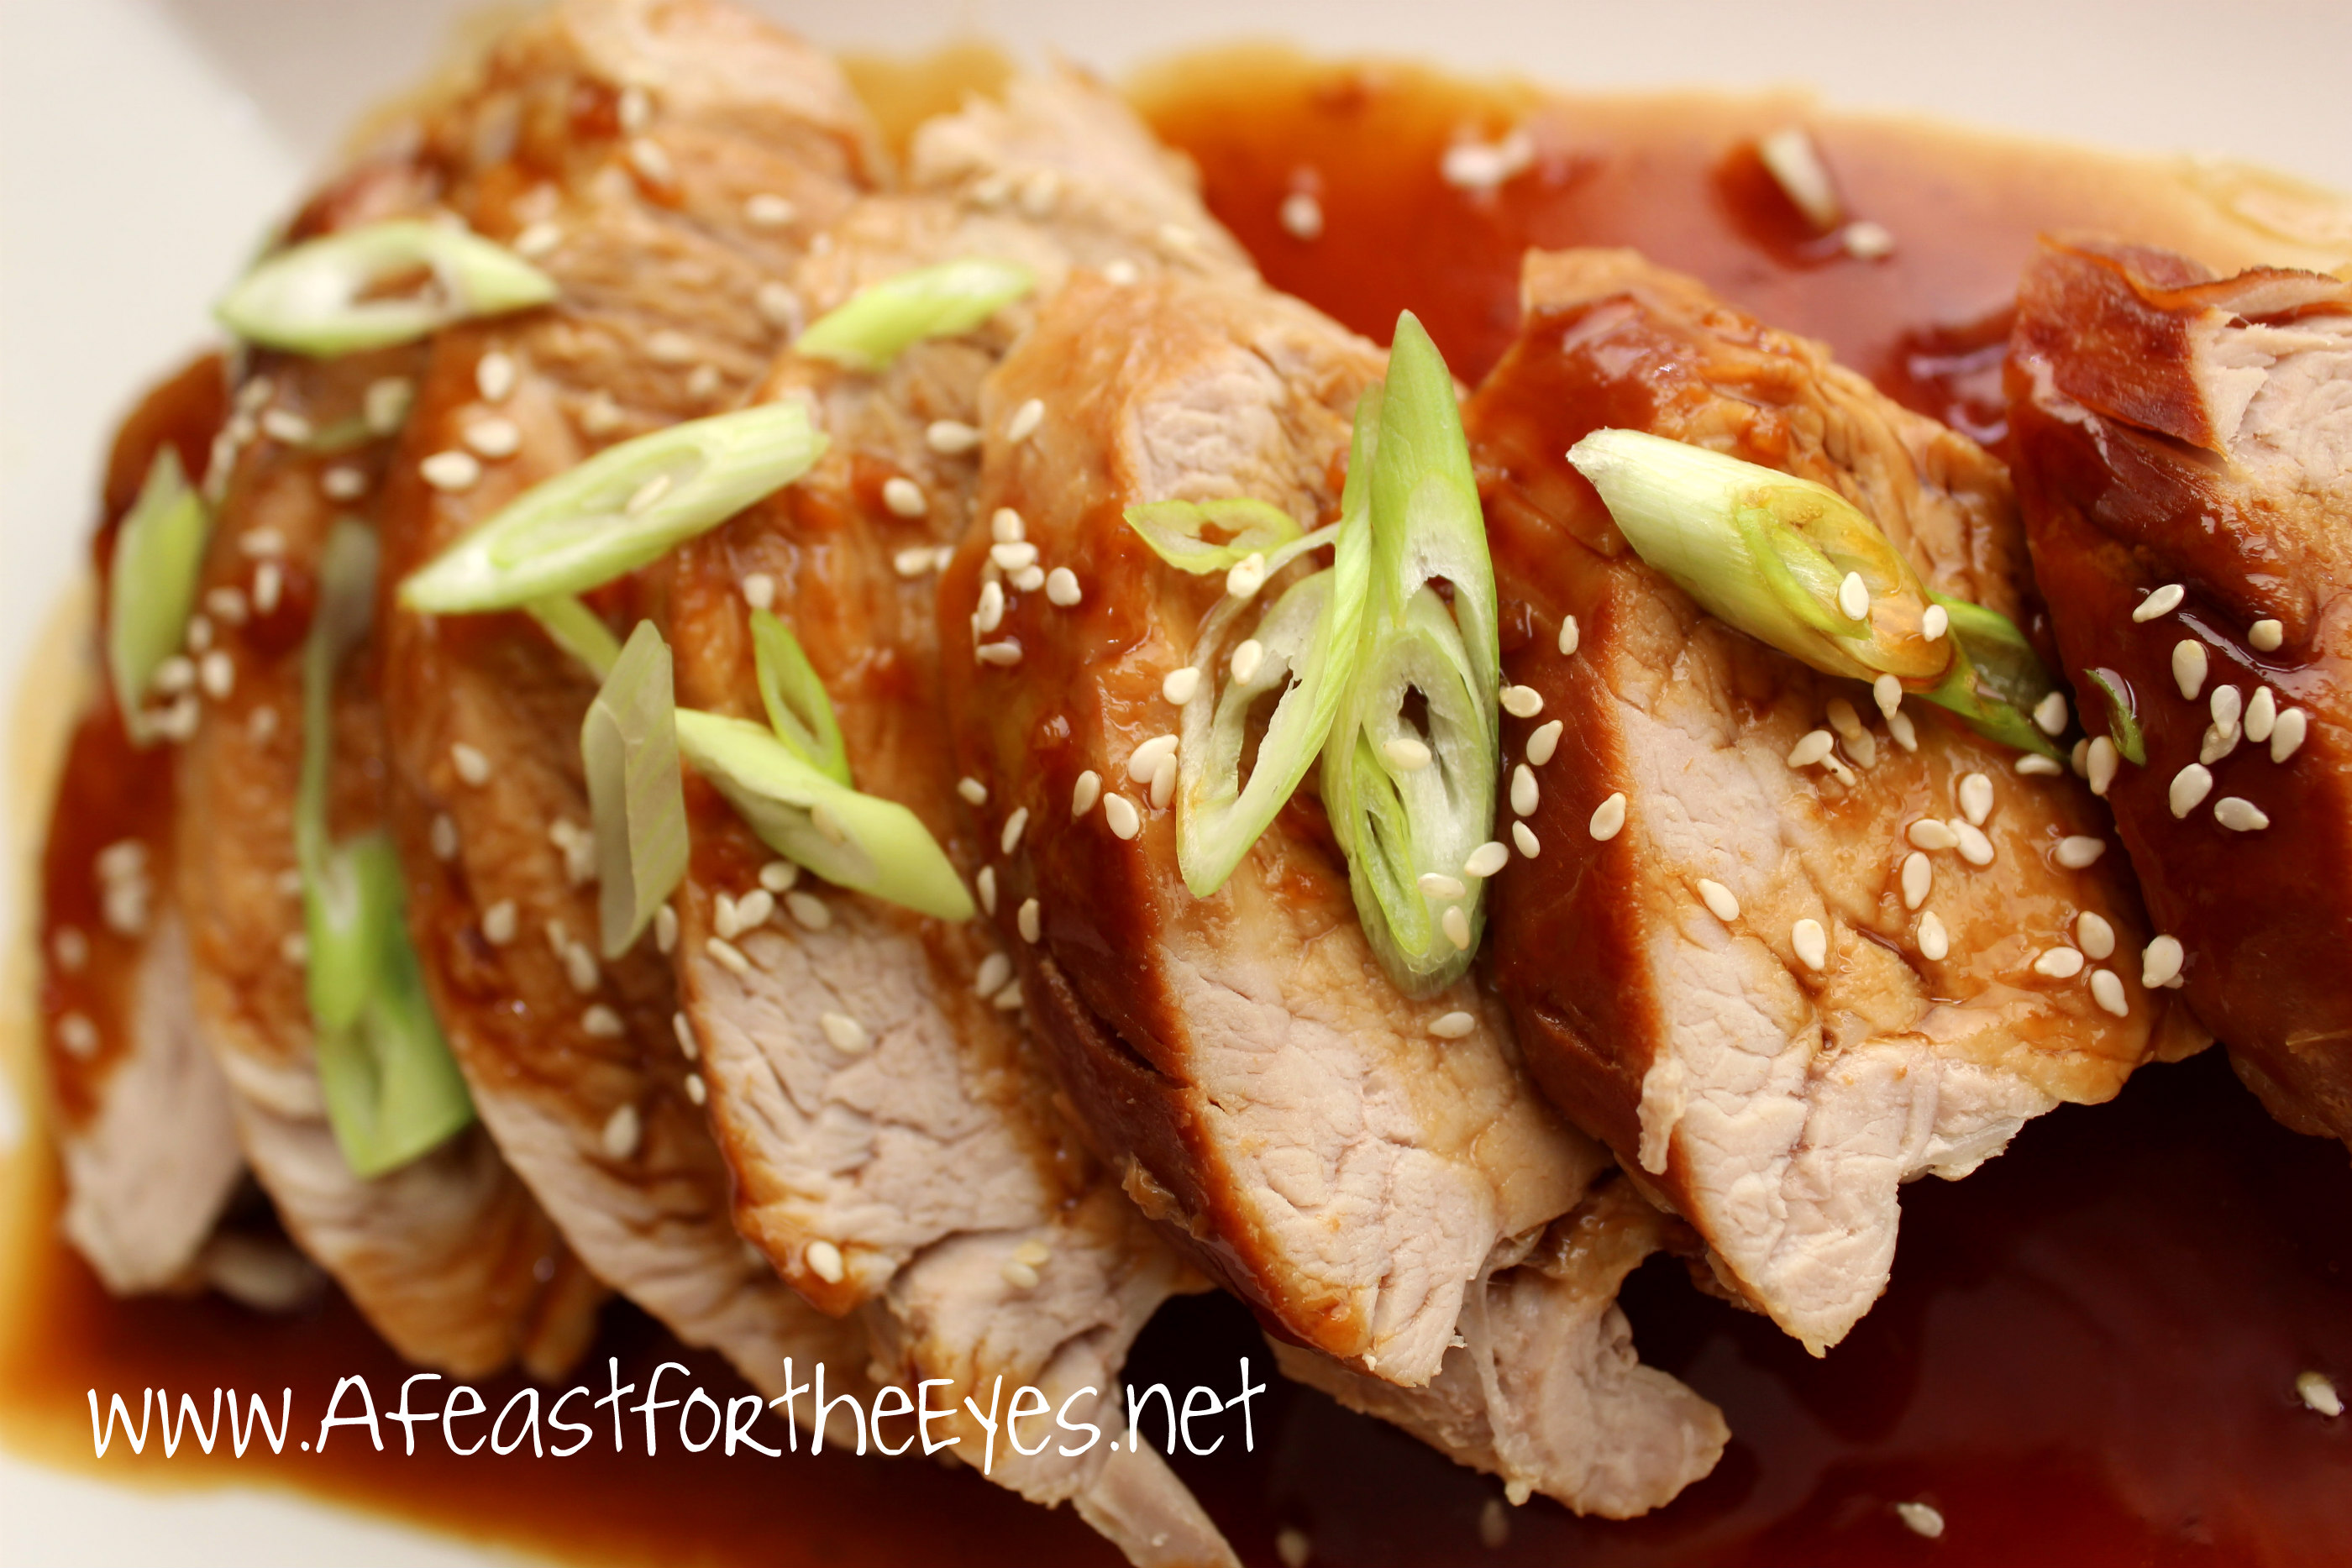 Instant Pot Asian Pork Tenderloin With A Honey Soy Glaze Sauce A Feast For The Eyes